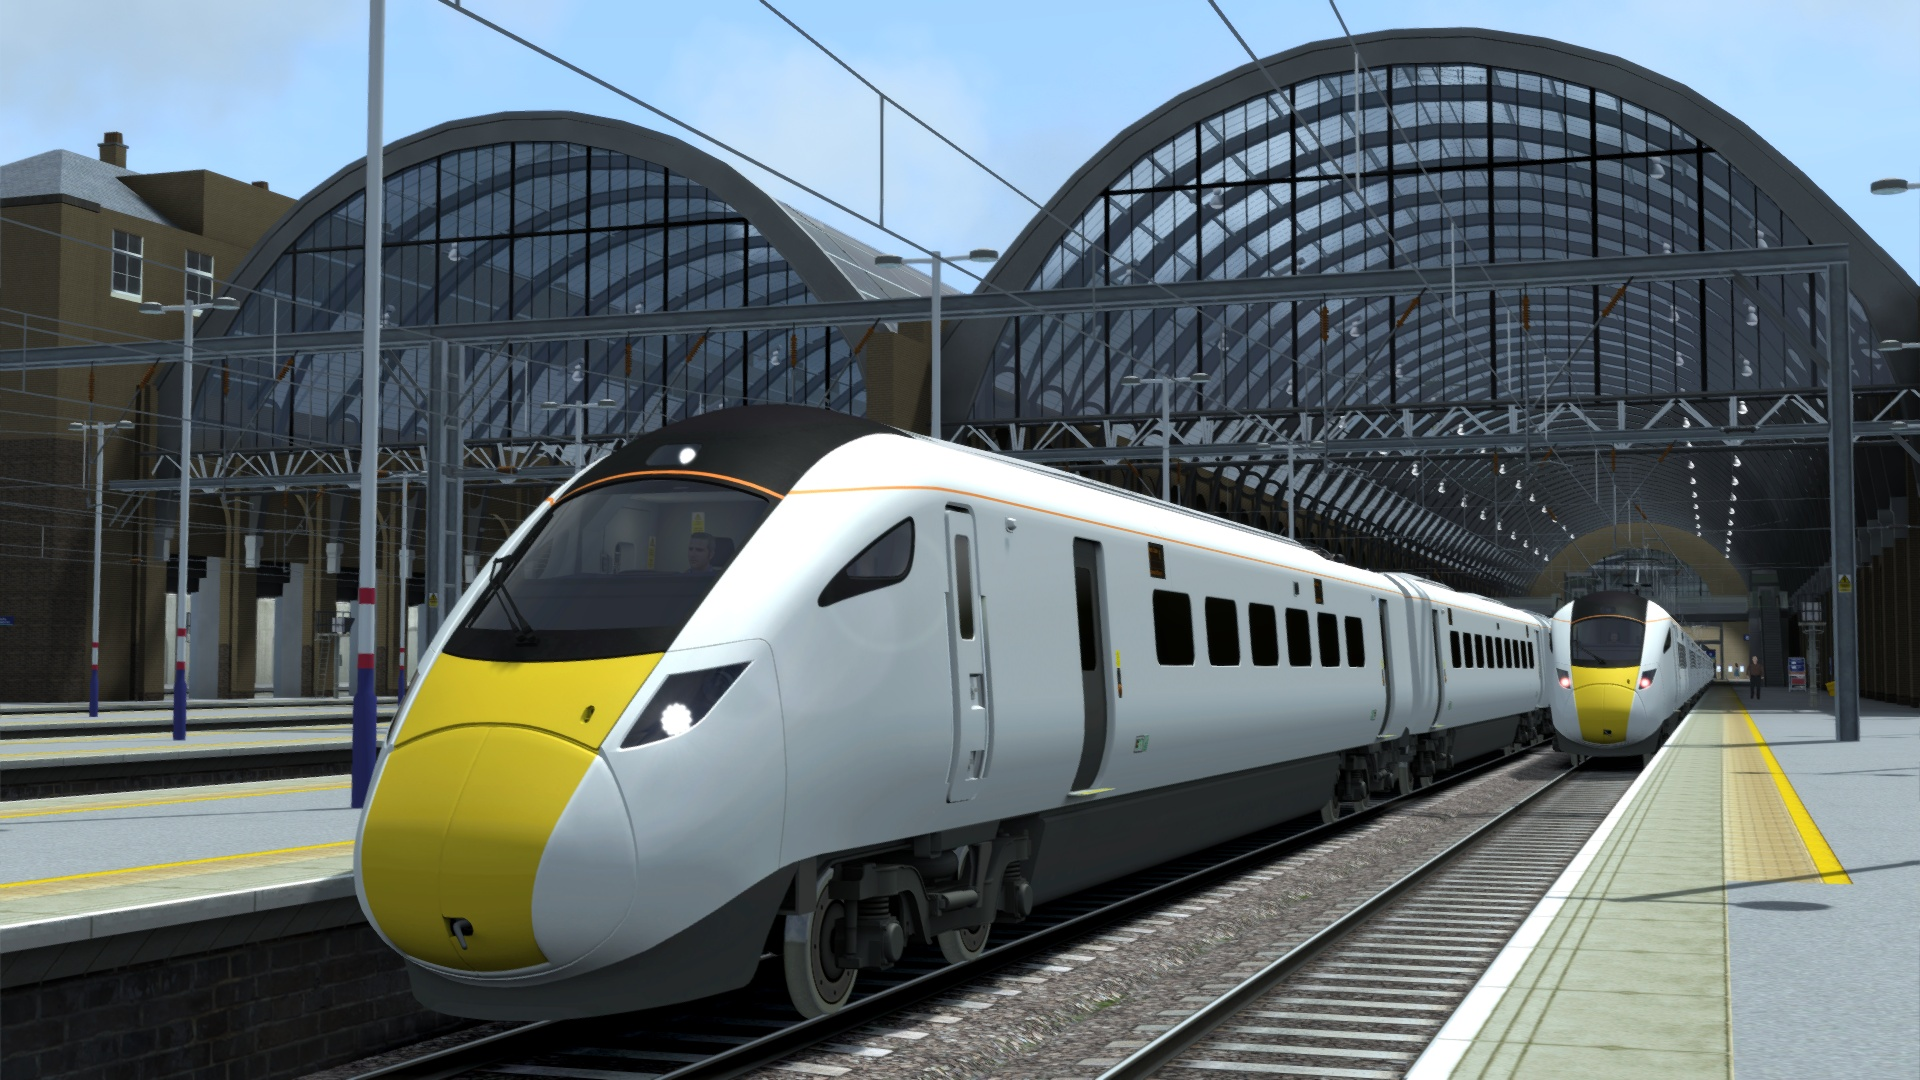 Train Simulator 2015 au départ_Screenshot_ECML London - Peterborough_51.53376--0.12353_14-00-56